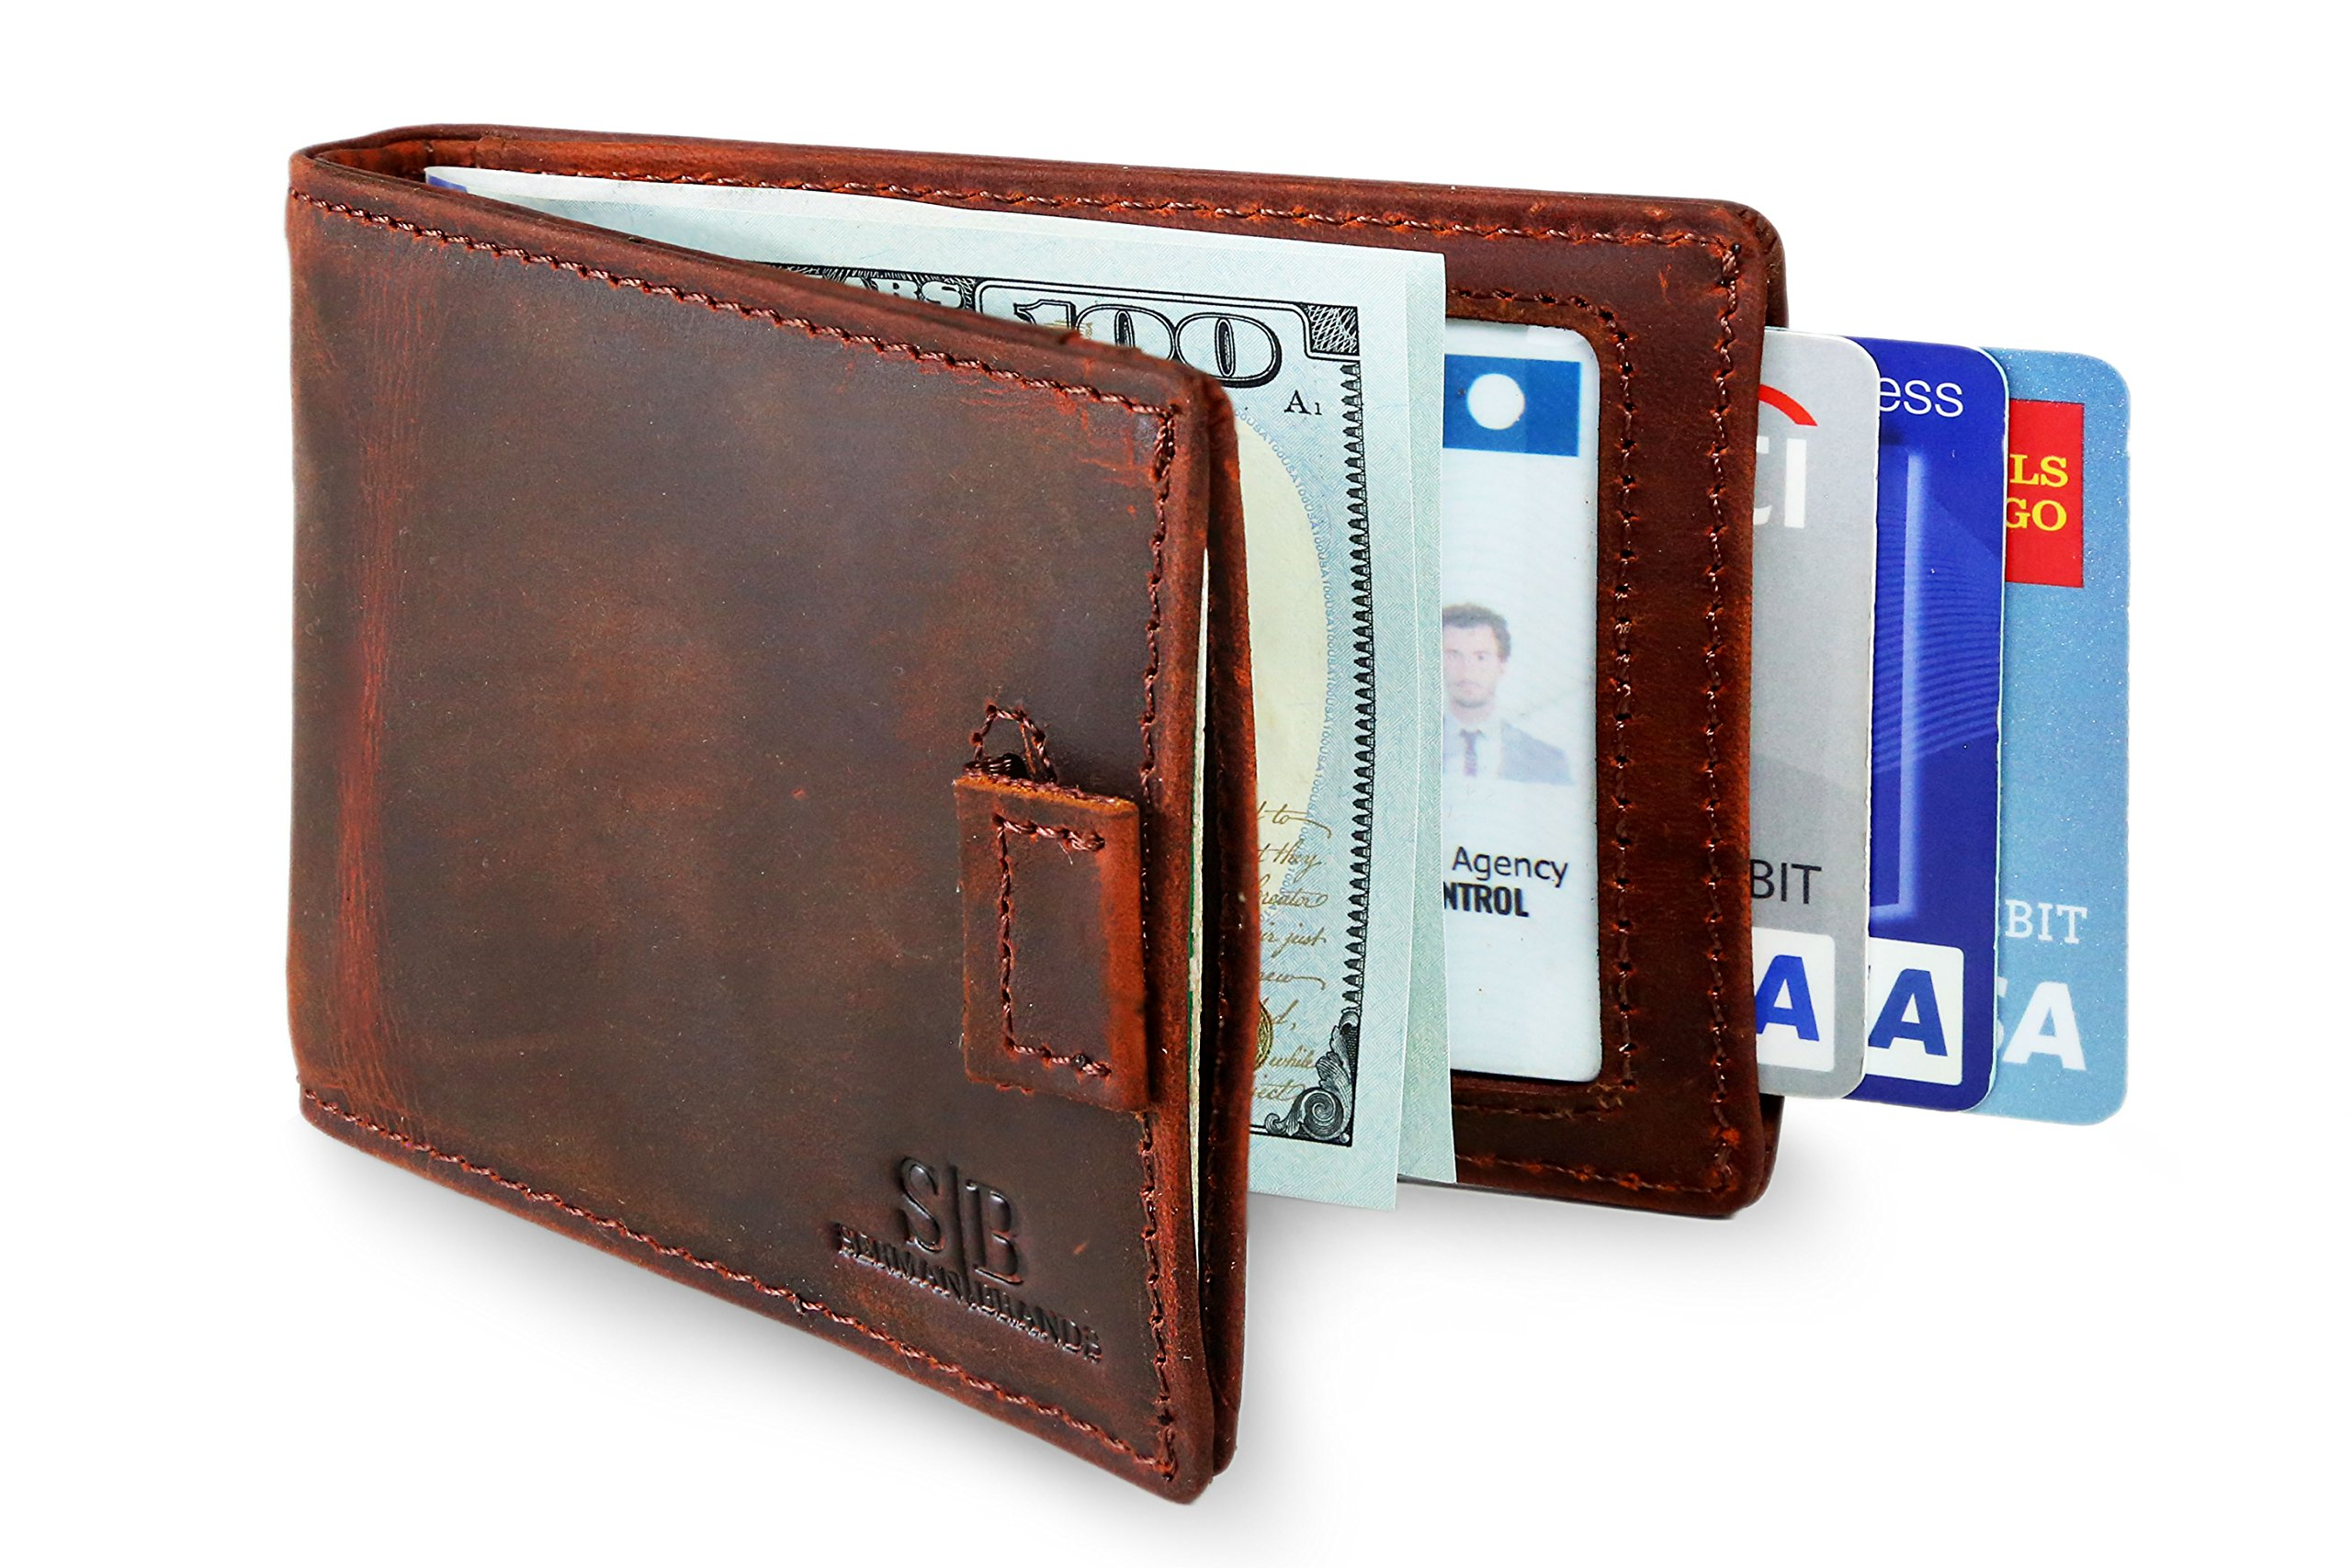 Travel Wallet RFID Blocking Bifold Slim Genuine Leather Thin Minimalist Front Pocket Wallets for Men Money Clip - Made From Full Grain Leather (Canyon Red 3.0)